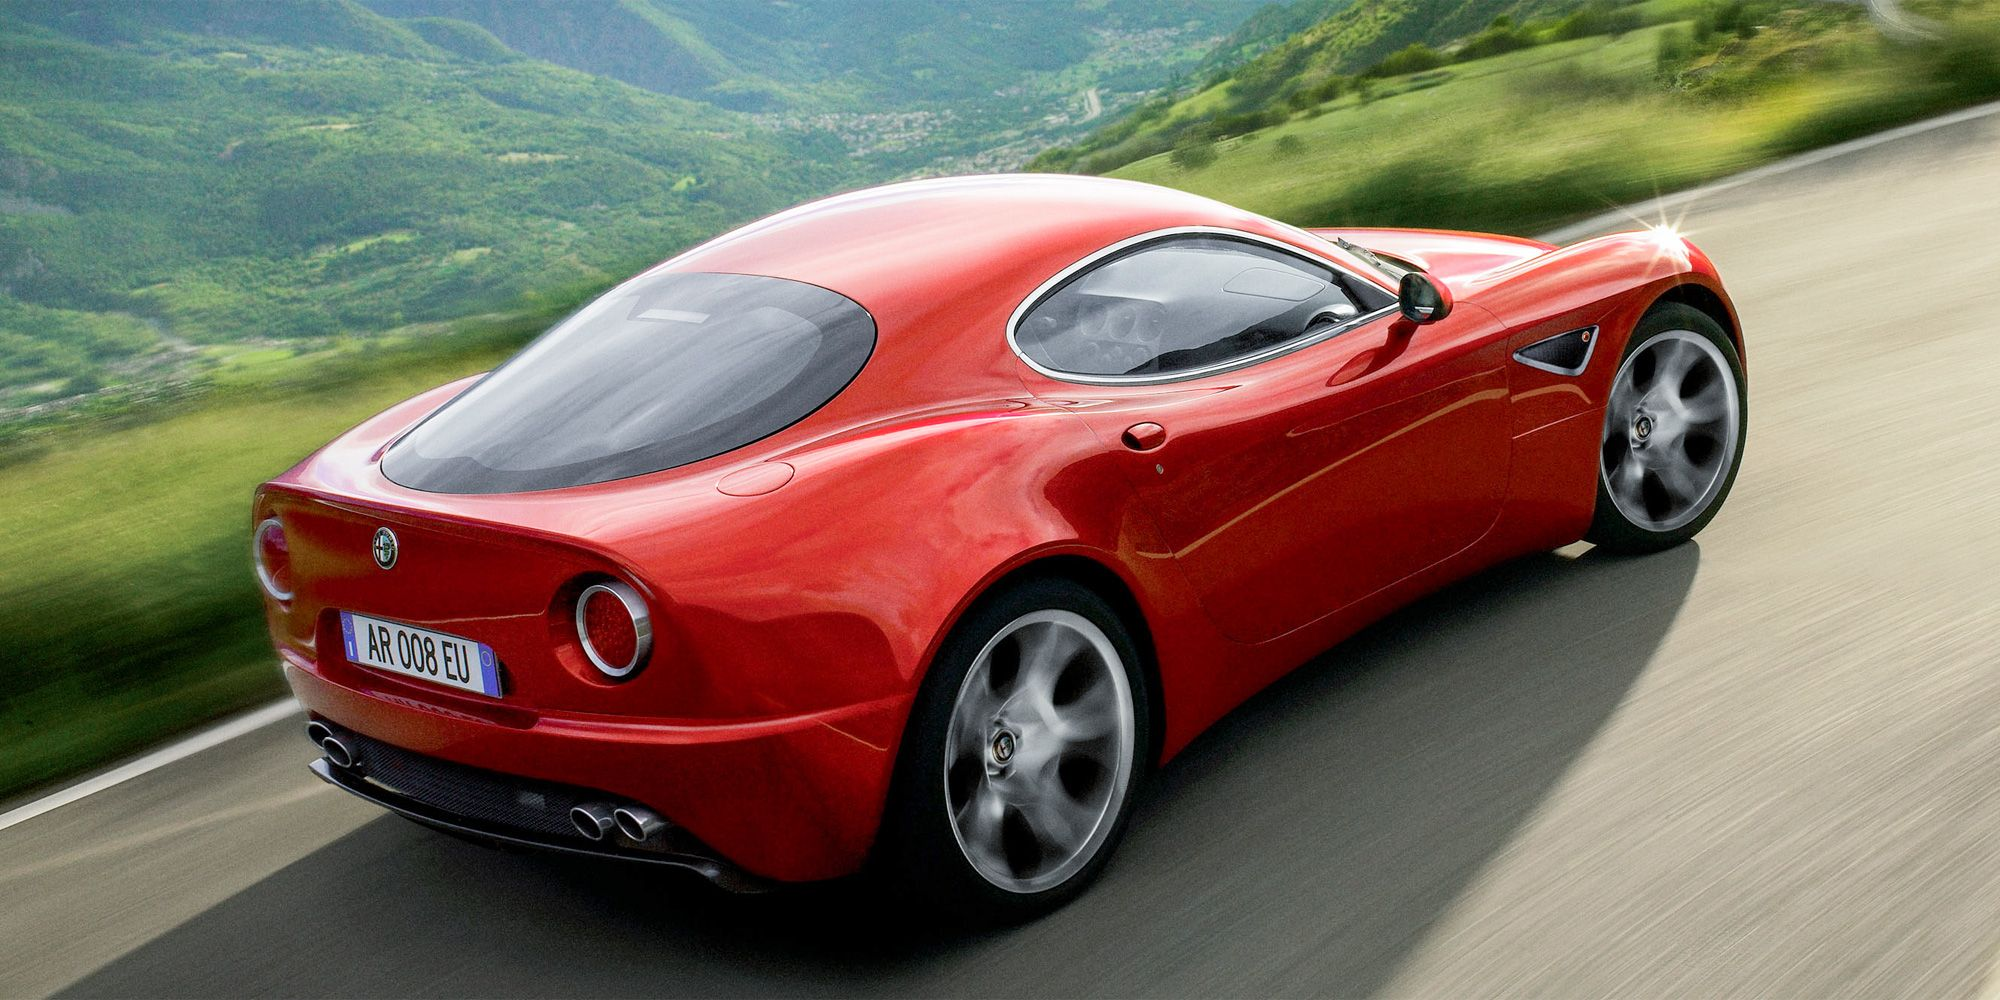 "<p>""The 8C reminded me of Zagato-bodied Alfa Romeos. They have extra bumps, extra shapes that are so beautiful. The moment the 8C came out as a showcar, it hit you. It was so sexy, so organically beautiful. It had a nostalgic purity that simply didn't exist in any other contemporary car.""</p><p><em>Photograph by Alfa Romeo</em></p>"